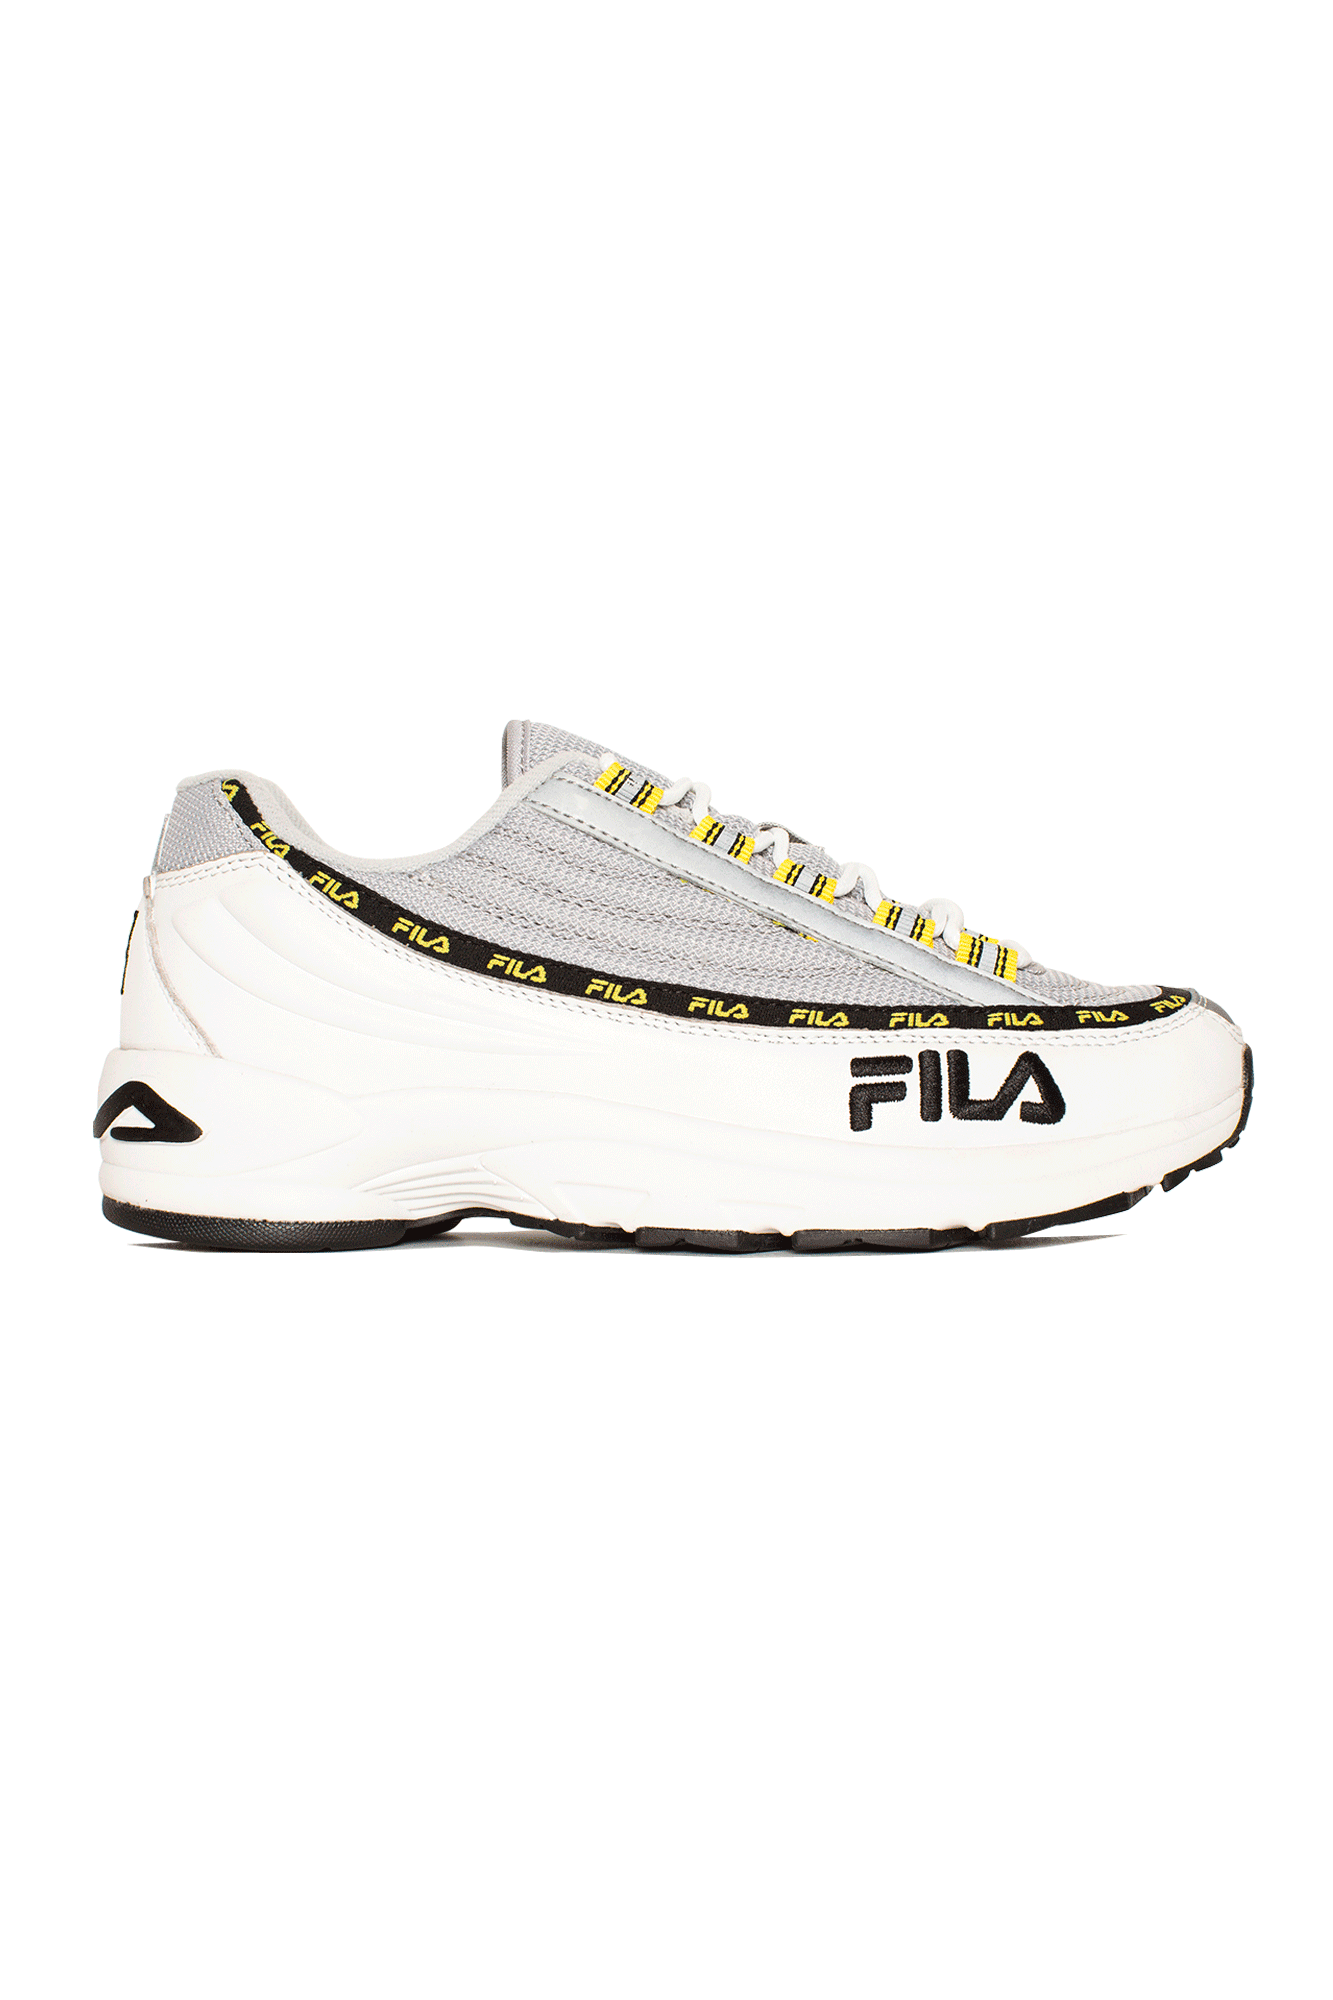 Fila Sneakers Dragster 97 Grey 1010570#000#01Z#7,5 - One Block Down